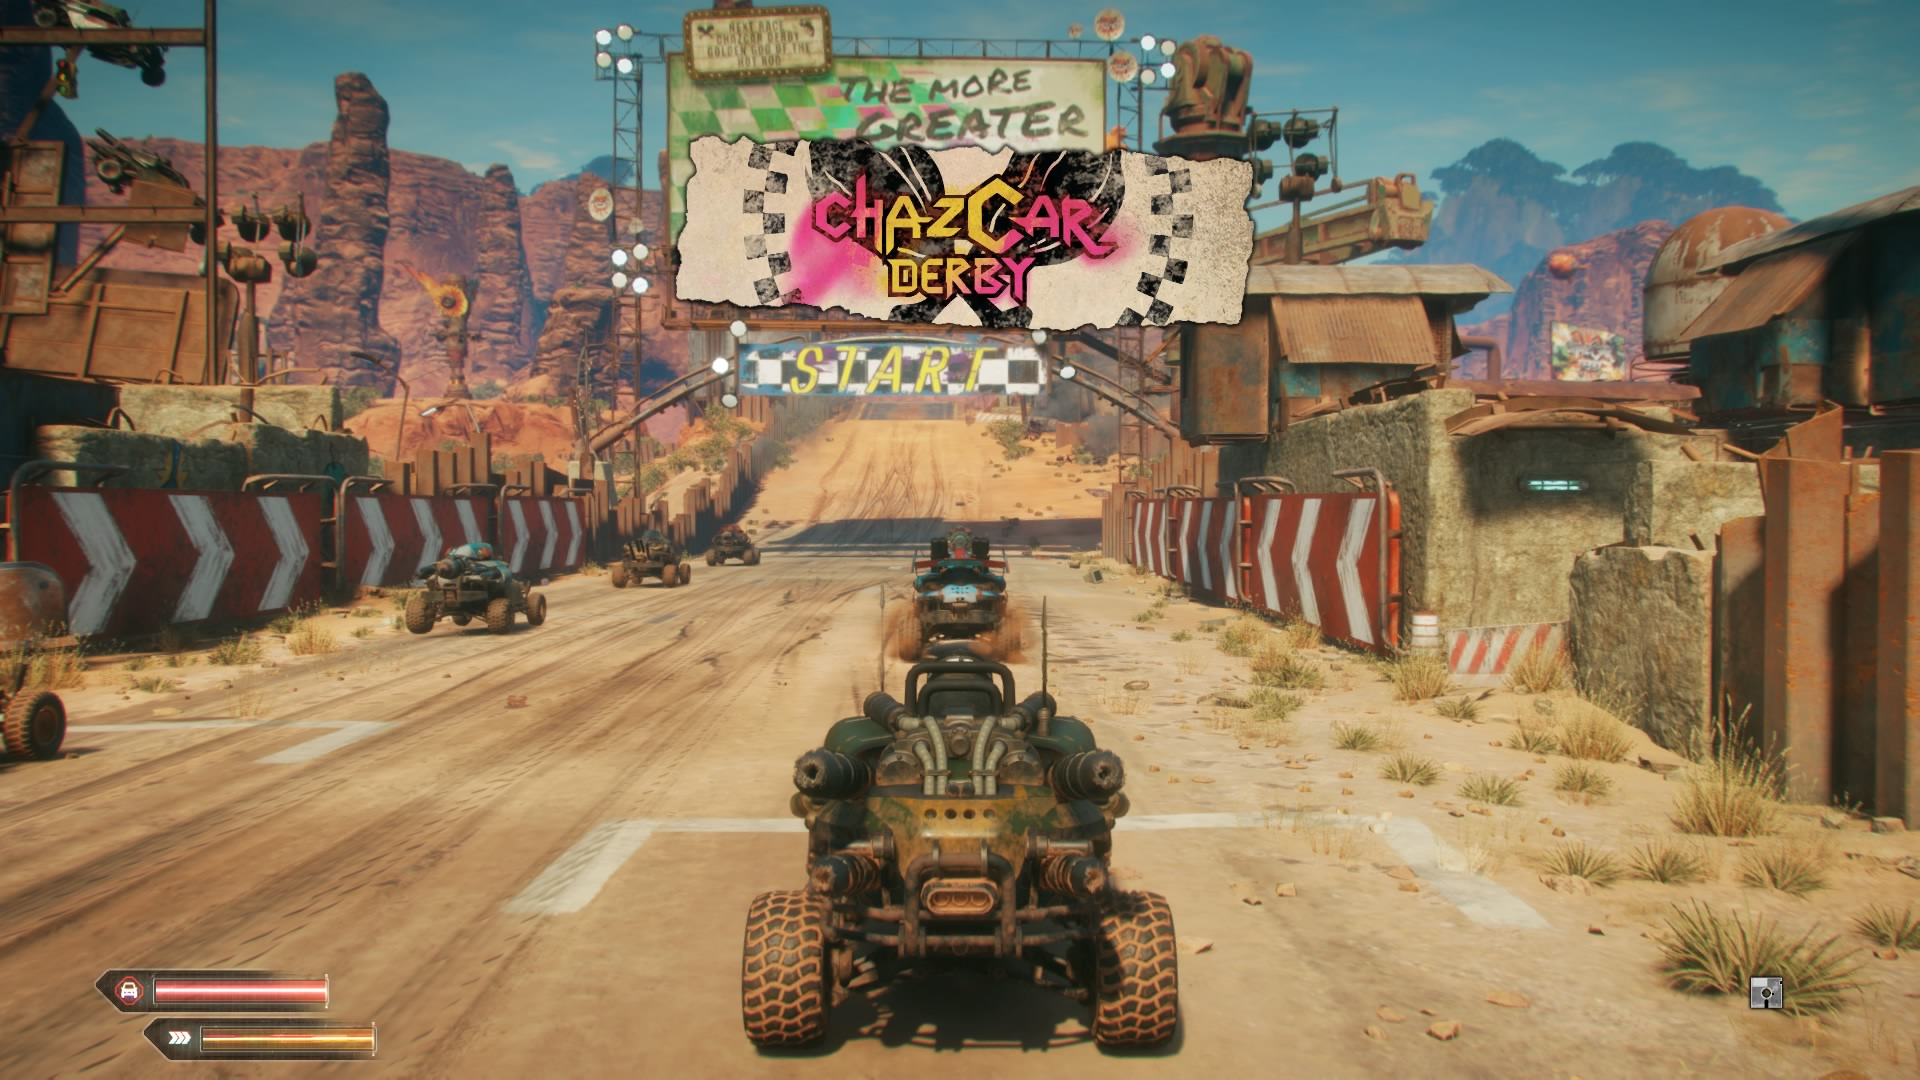 Rage 2 ya se encuentra disponible en nuestro mercado para PS4, Xbox One y PC.